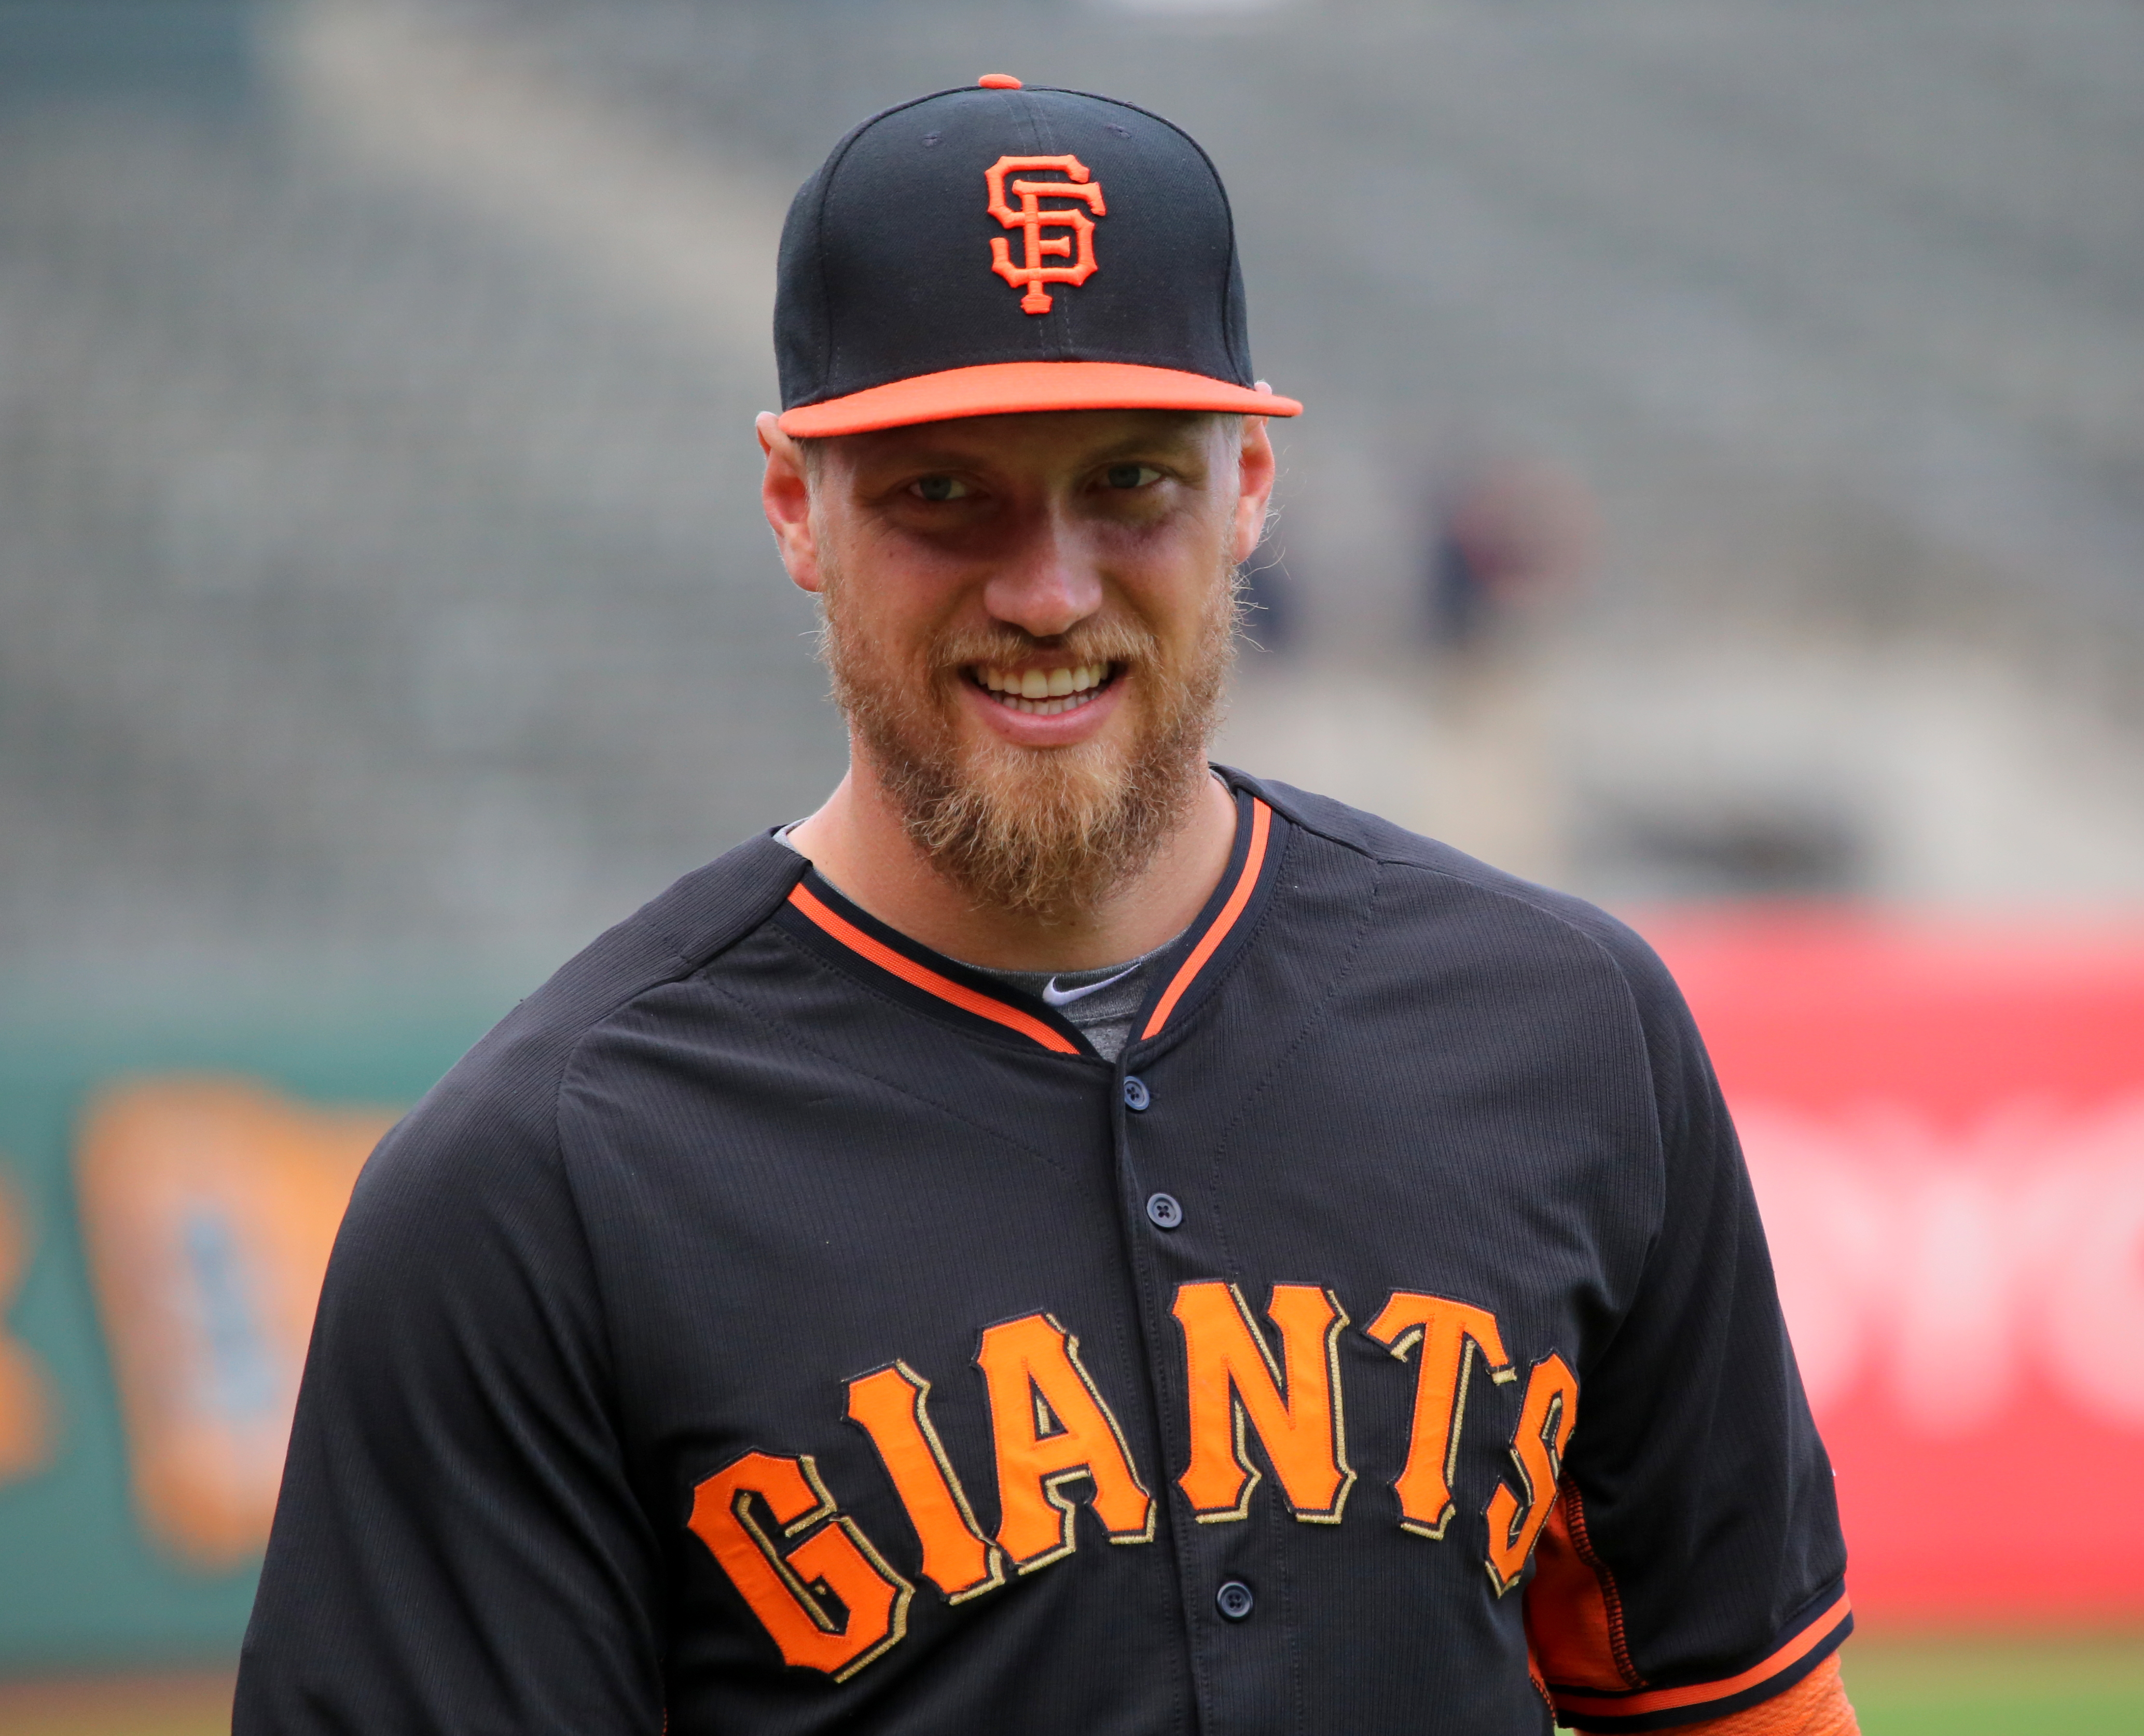 7494abe351e0d Hunter Pence - Wikipedia